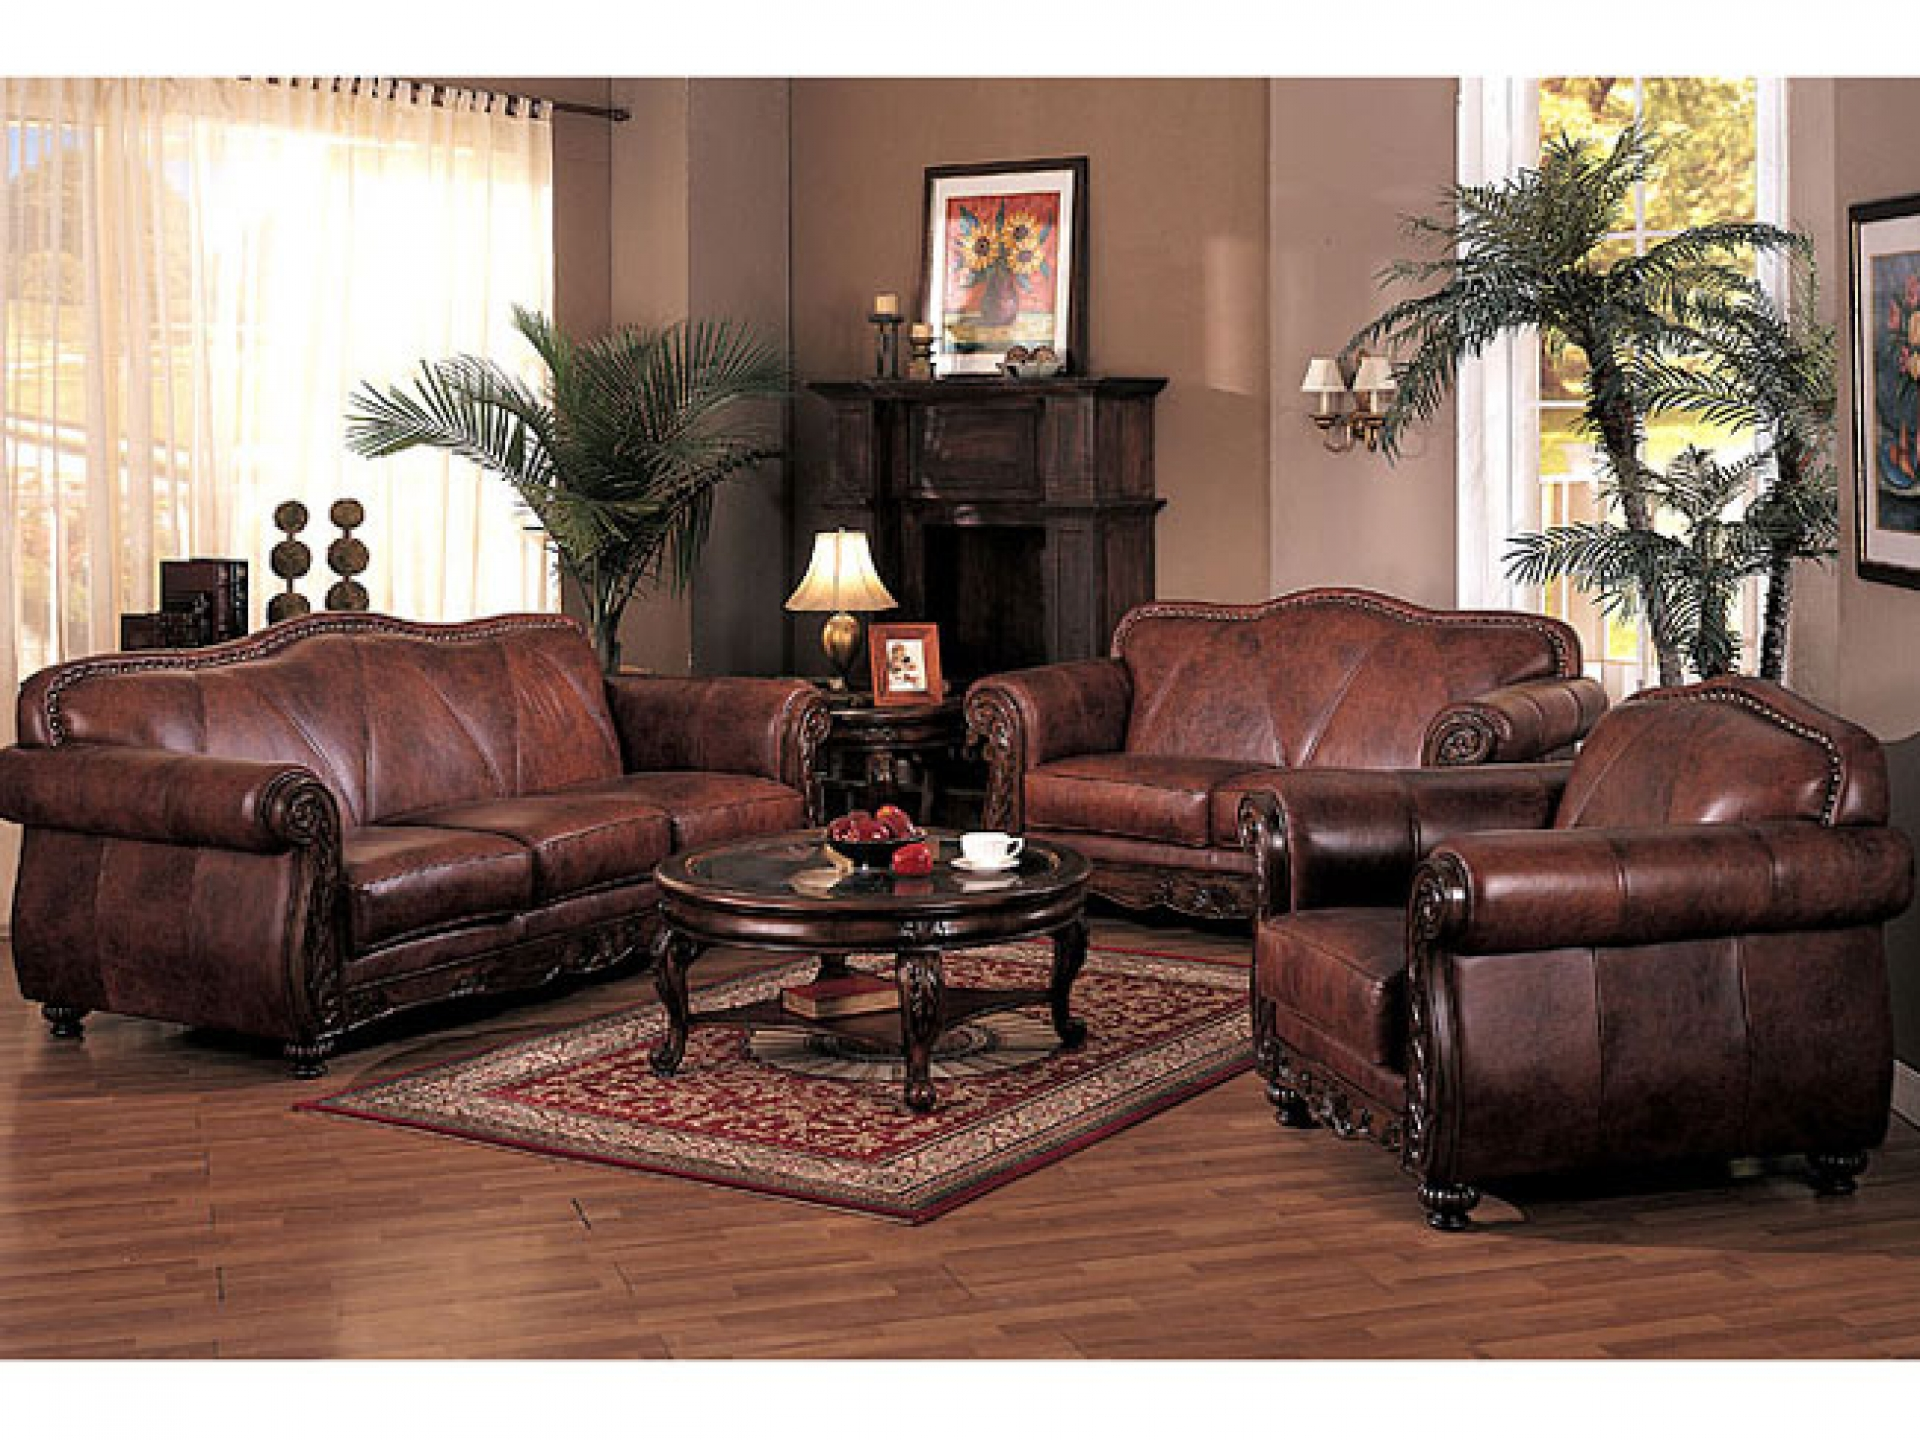 comfy front room furnishings for living room ideas with front room furnishings outlet - Living Room Furnishings